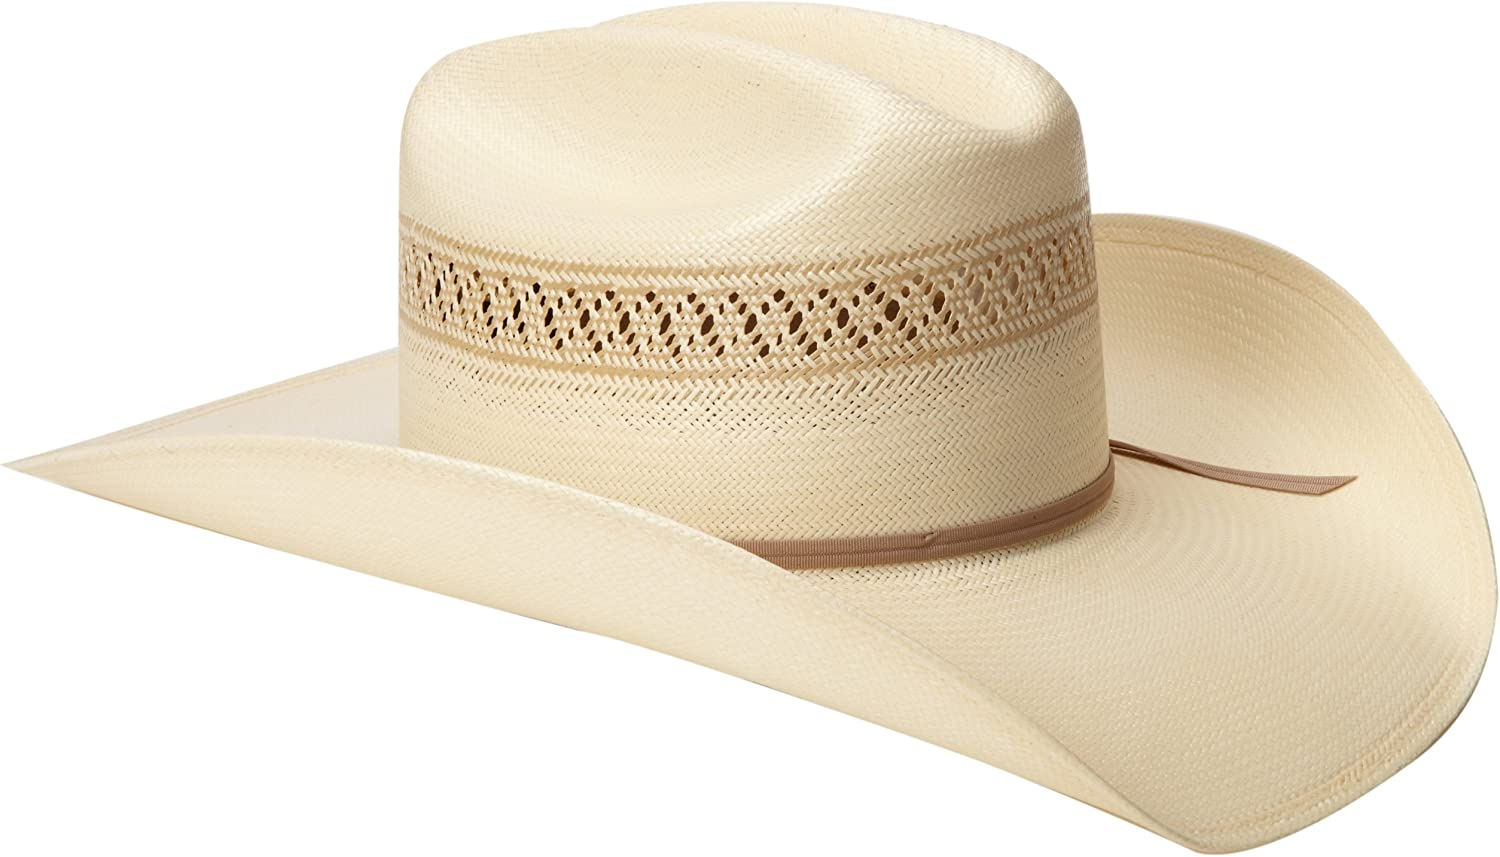 Rscnly-304281 RESISTOL Mens Conoly 10X Straw Cowboy Hat